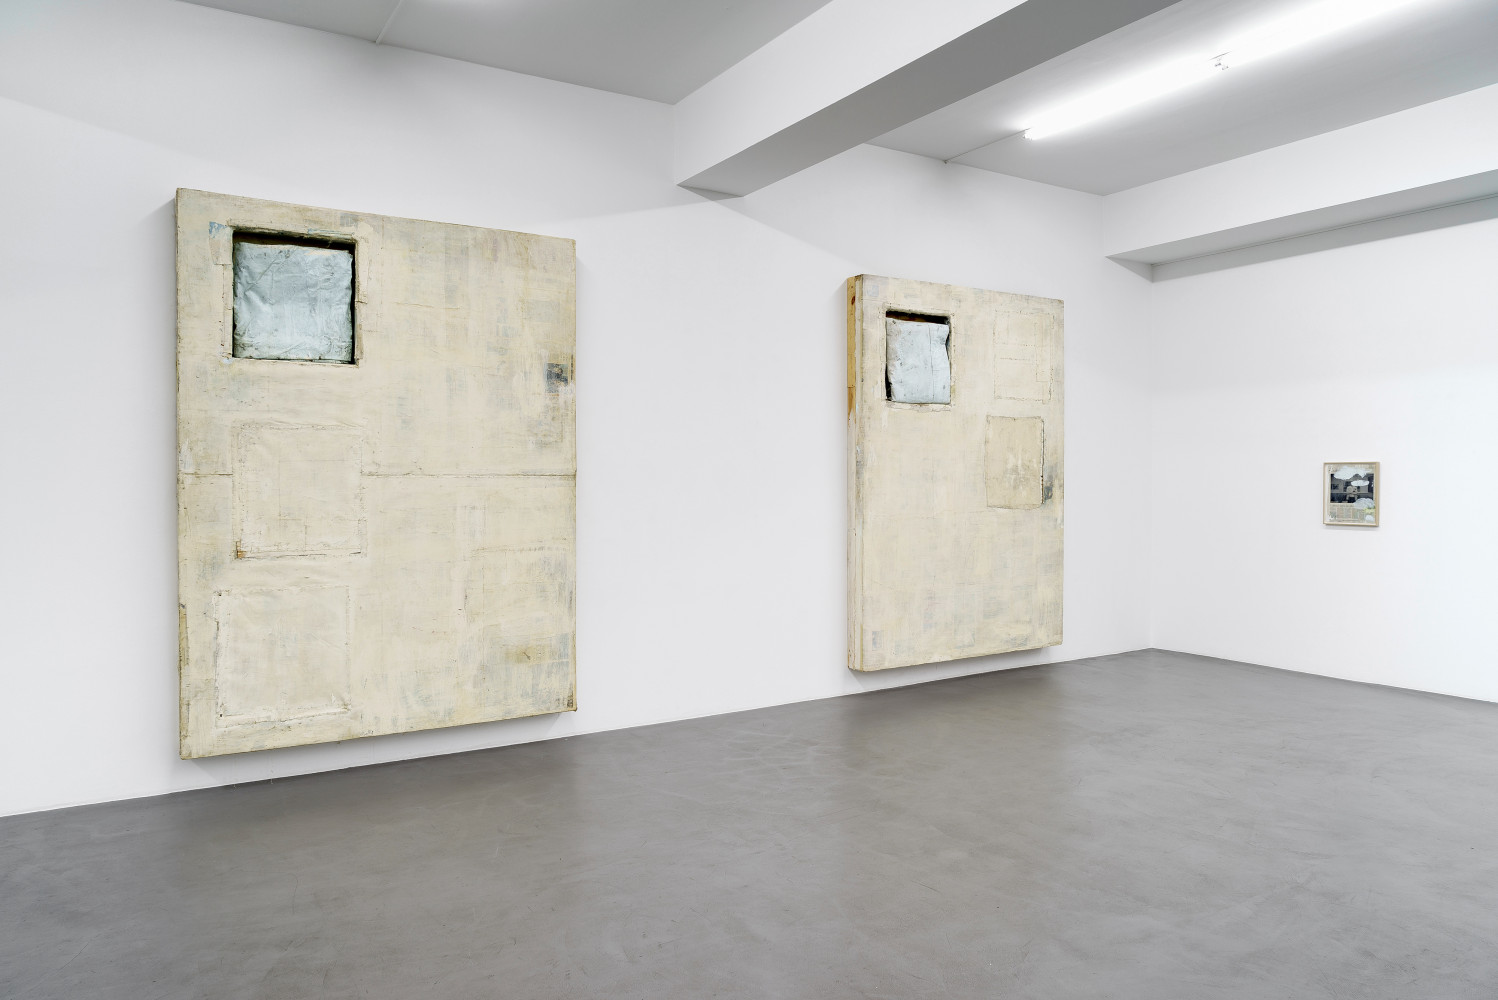 Lawrence Carroll, 'Under the Blue', Installation view, Buchmann Galerie, 2017